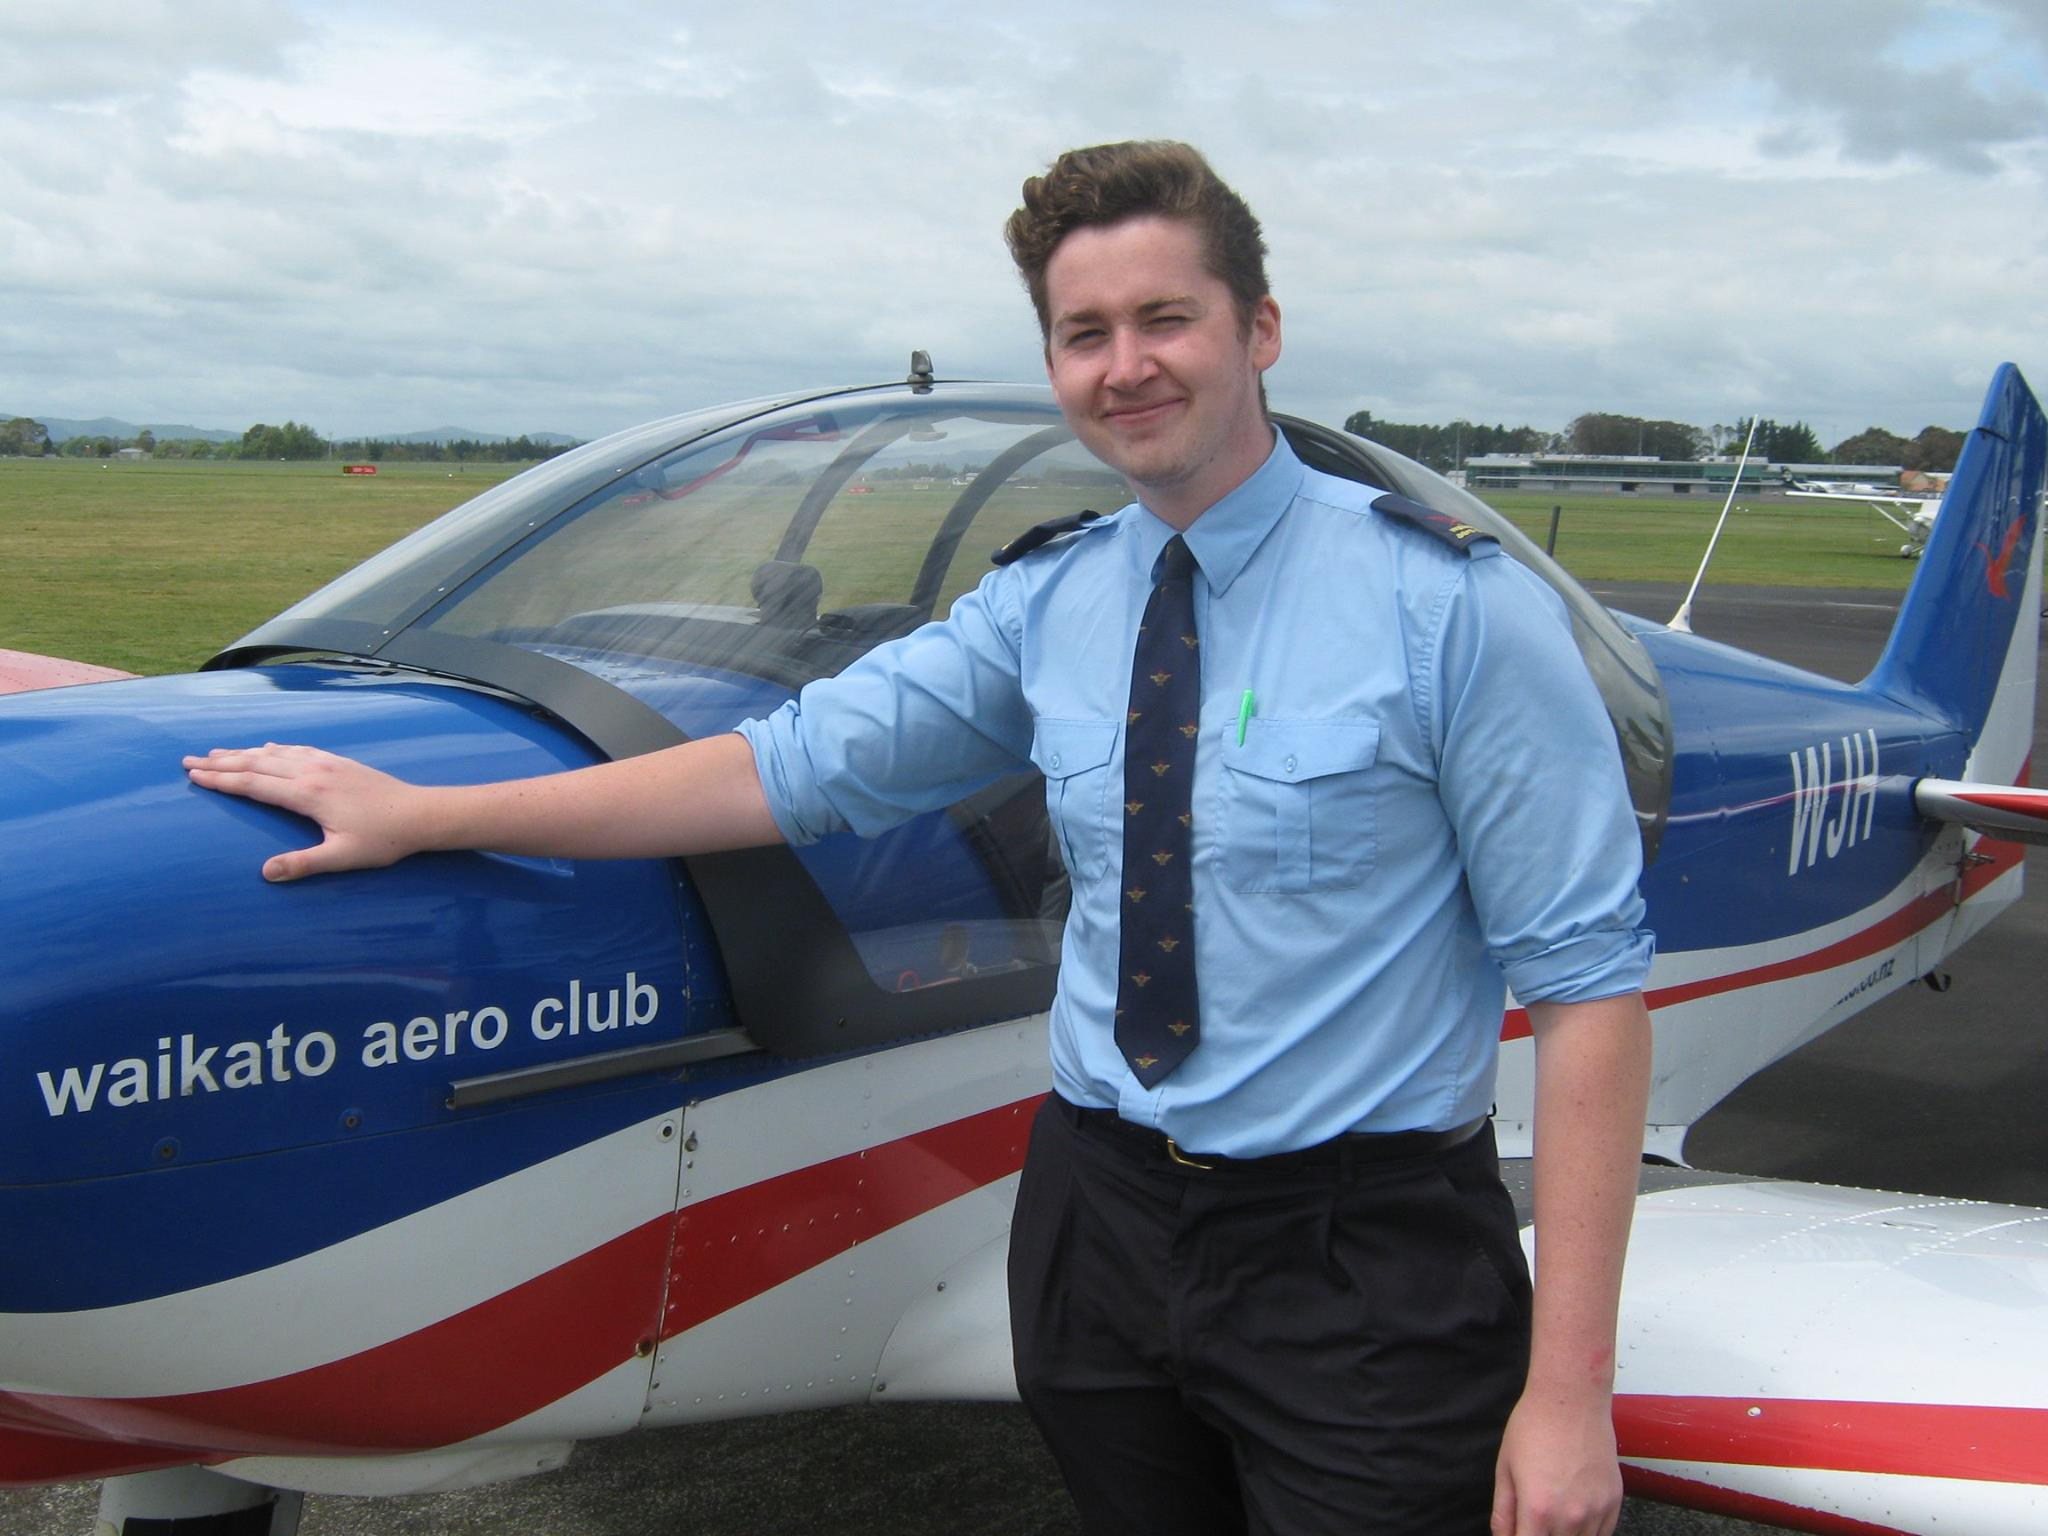 DIPLOMA IN AVIATION — Waikato Aviation